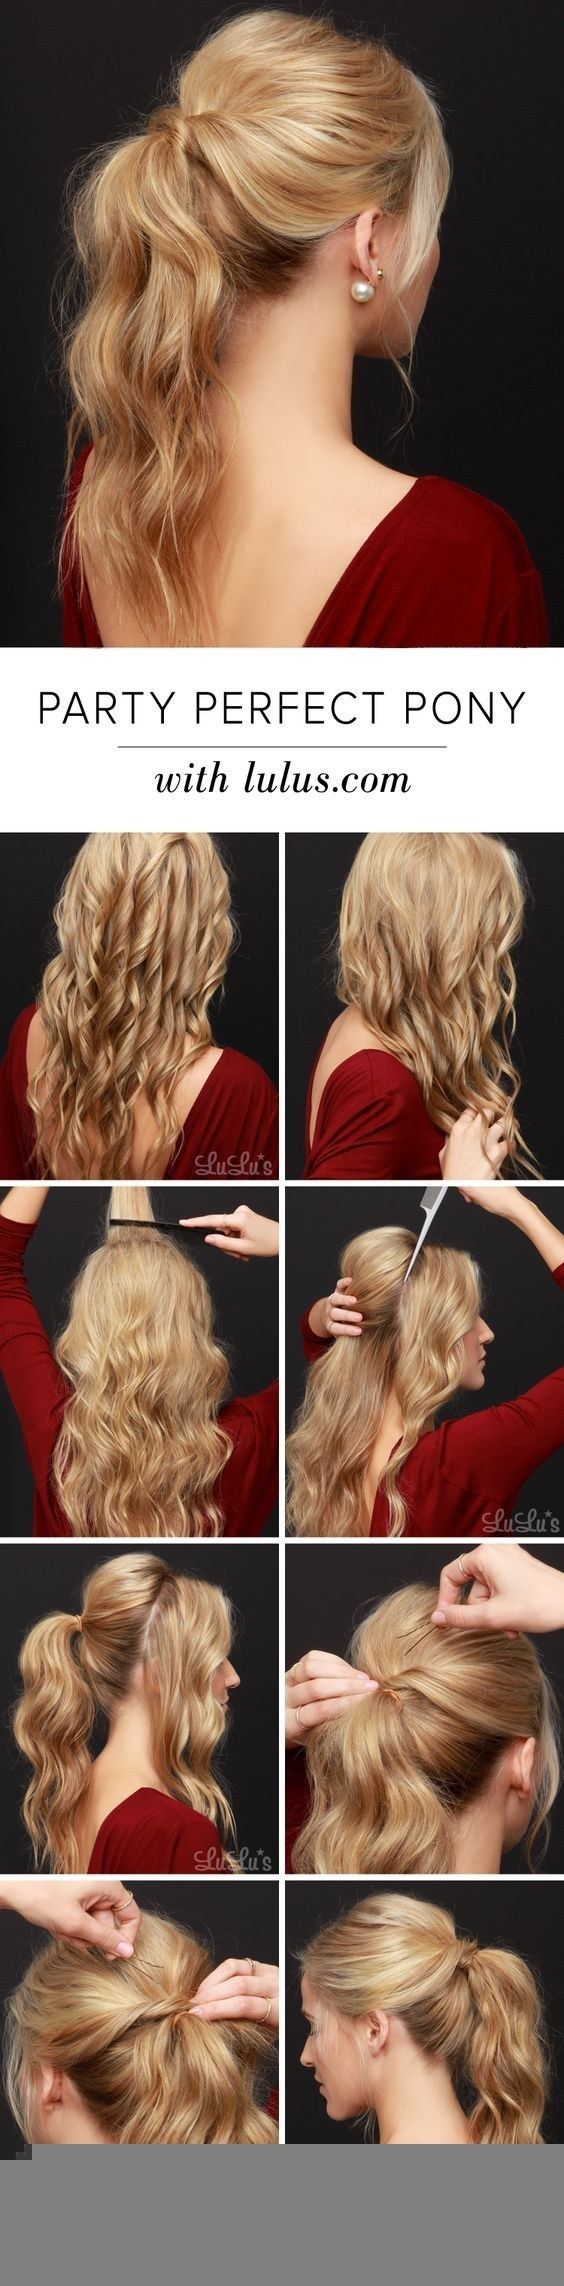 Ponytails are advancing aback into FASHION in a big way – and what's not to love? Working your beard up off your face allows you to agreement by creating a accomplished ambit of altered looks from chic to funky, adult to glassy – indeed, a ponytail can be the absolute hairstyle for any occasion! We've …